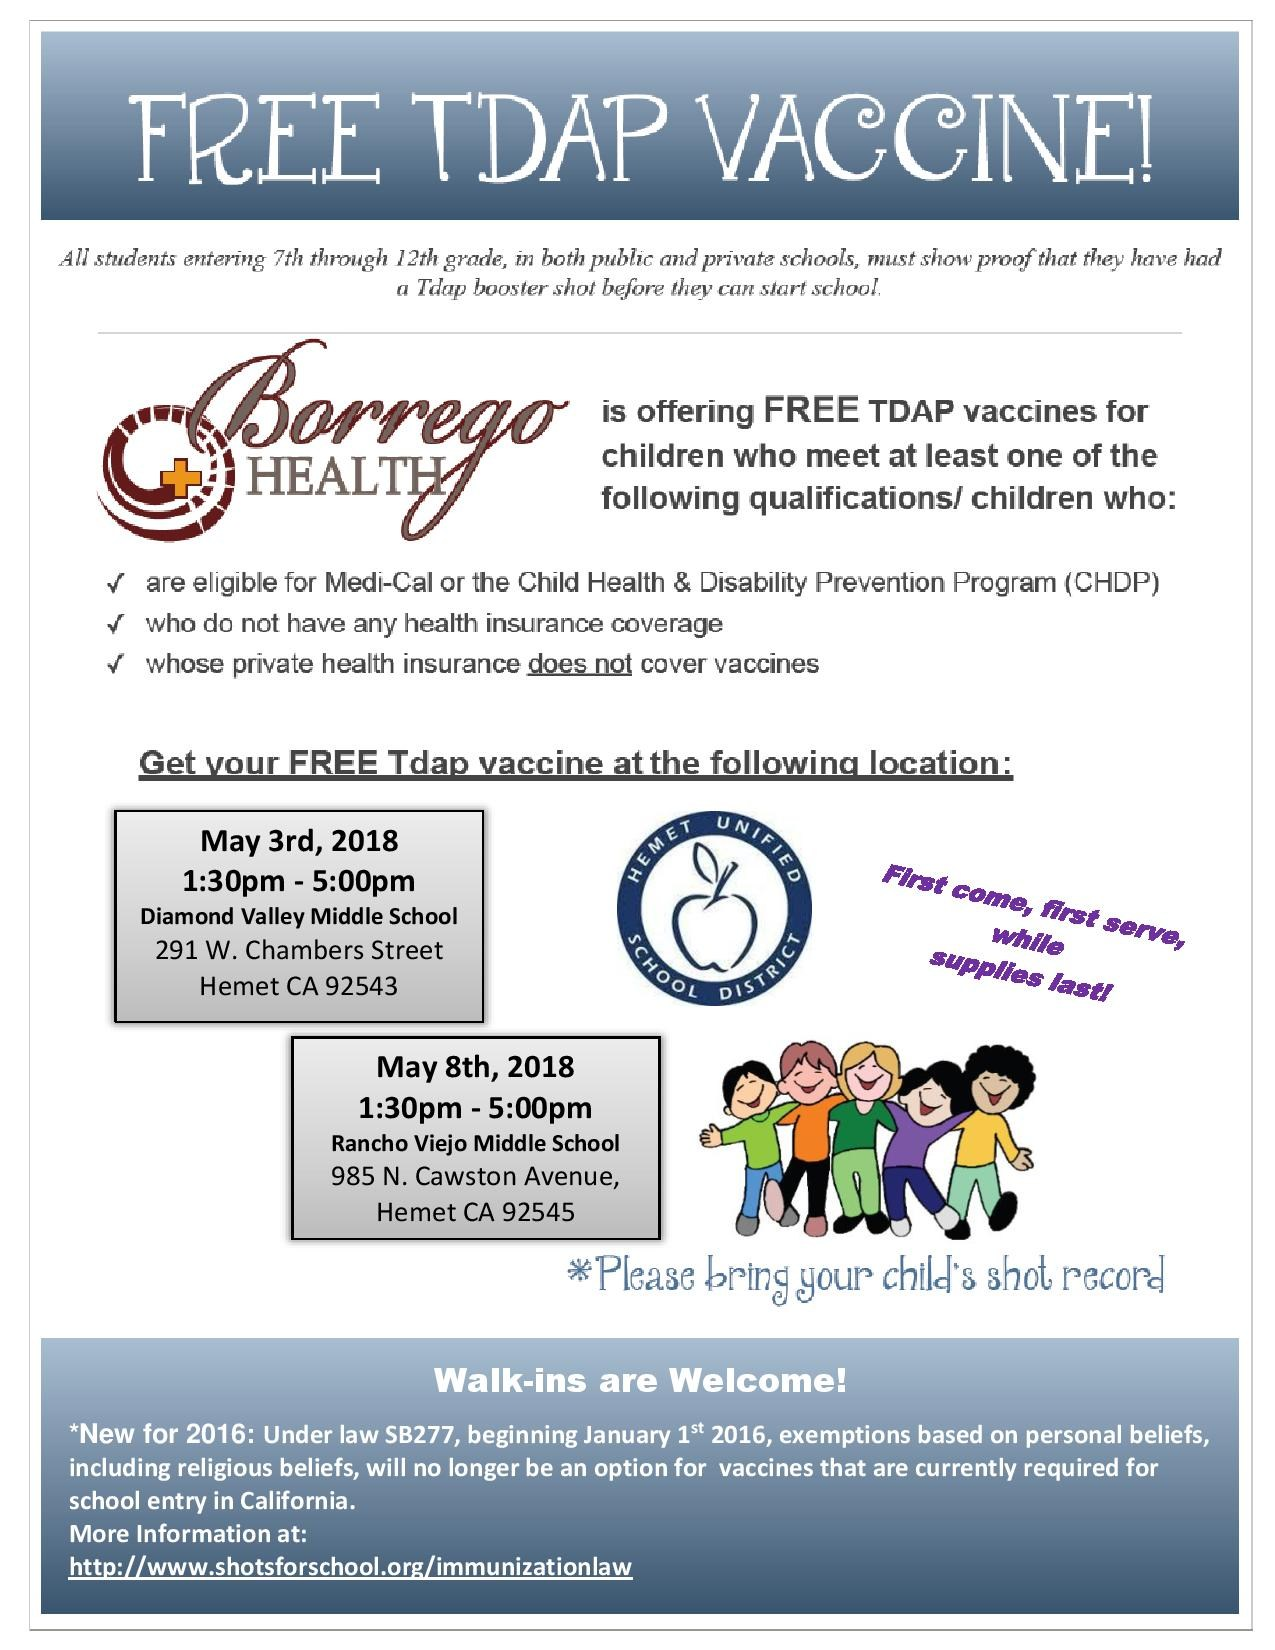 Borrego Health is offering Free TDAP vaccines for Children who meet at least one of the following qualifications: Are eligible for Medi-Cal or the Child Health & Disability Prevention Program Who do not have any Health Insurance Coverage Whose private Health insurance does not cover vaccines First come, first serve, while supplies last! May 3rd, 2018  1:30pm - 5:00pm  Diamond Valley Middle School  May 8th, 2018  1:30pm - 5:00pm  Rancho Viejo Middle School